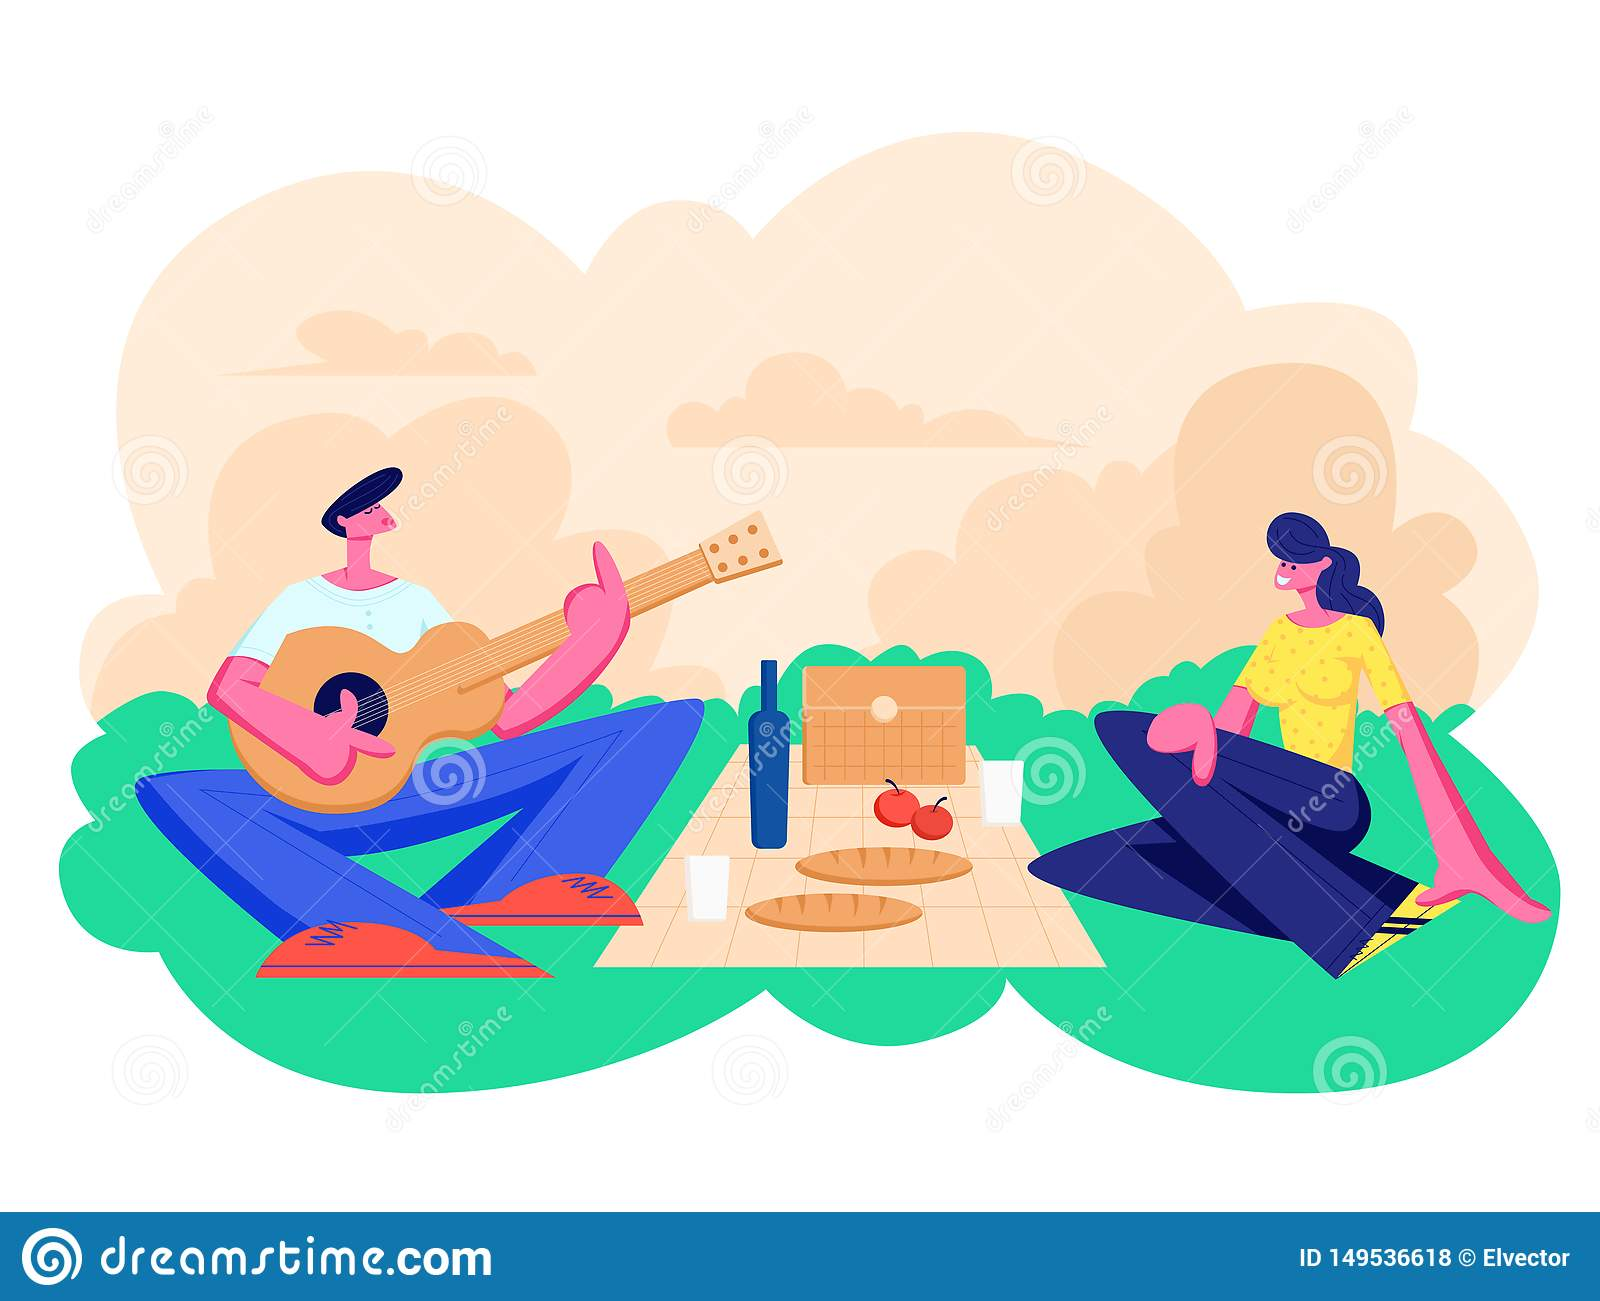 Happy Couple of Male and Female Characters Dating Outdoors on Picnic. Declaration of Love, Young Man Playing Guitar, Singing Song